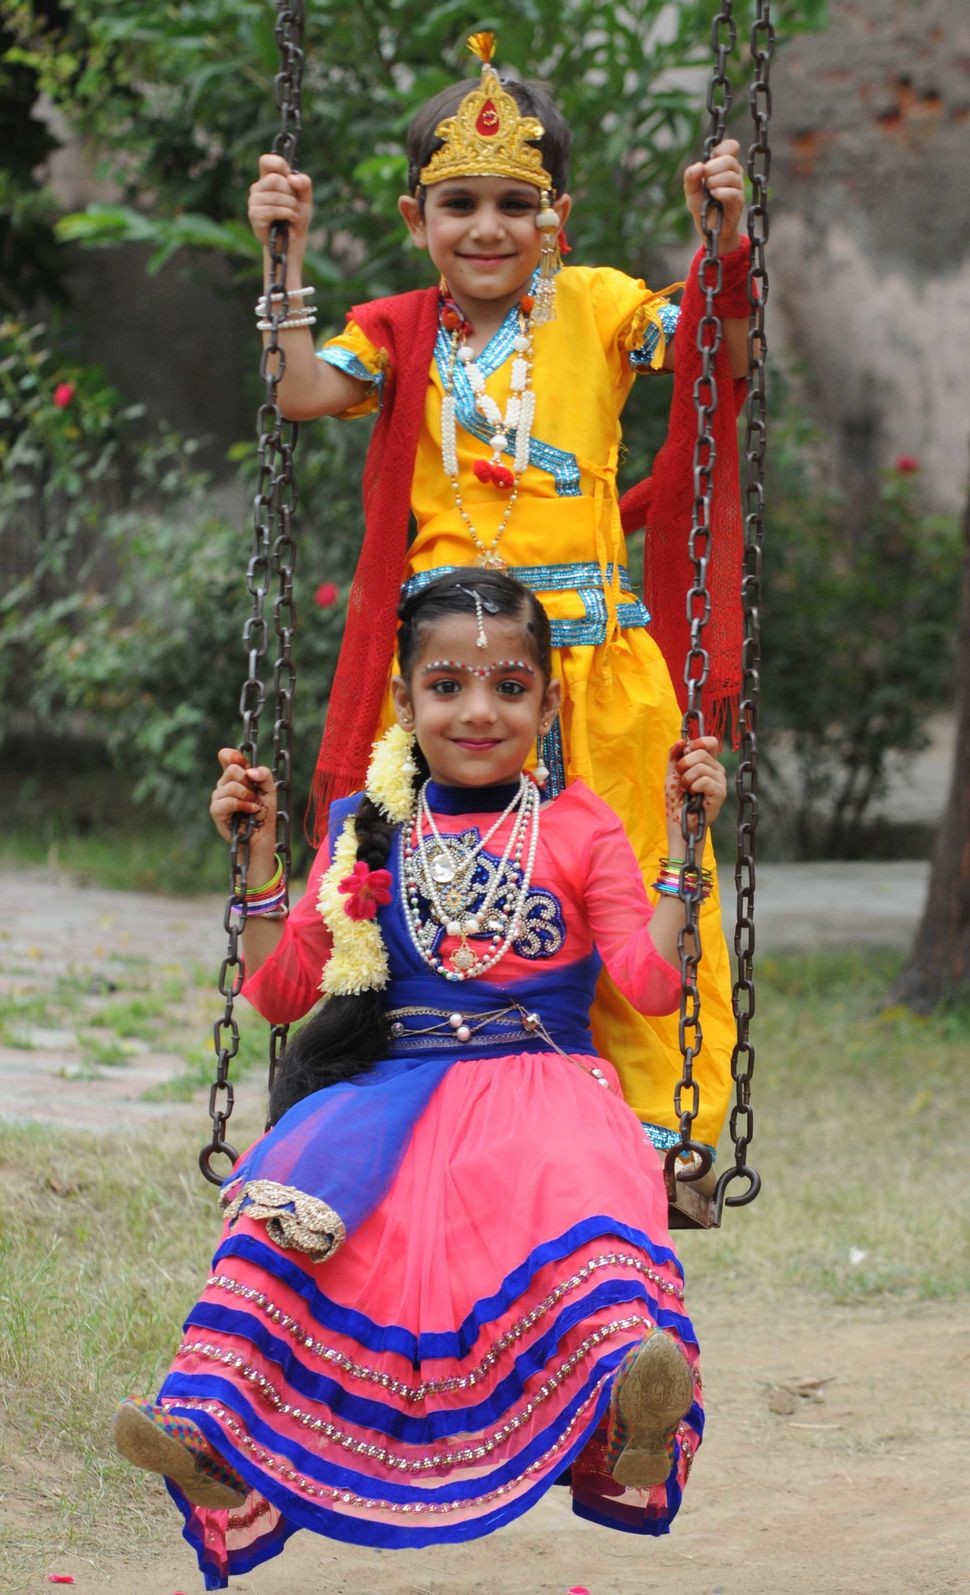 Children dressed up as Lord Krishna and Radha on the eve of the Janmashtami on August 24, 2016 in Patiala, India.